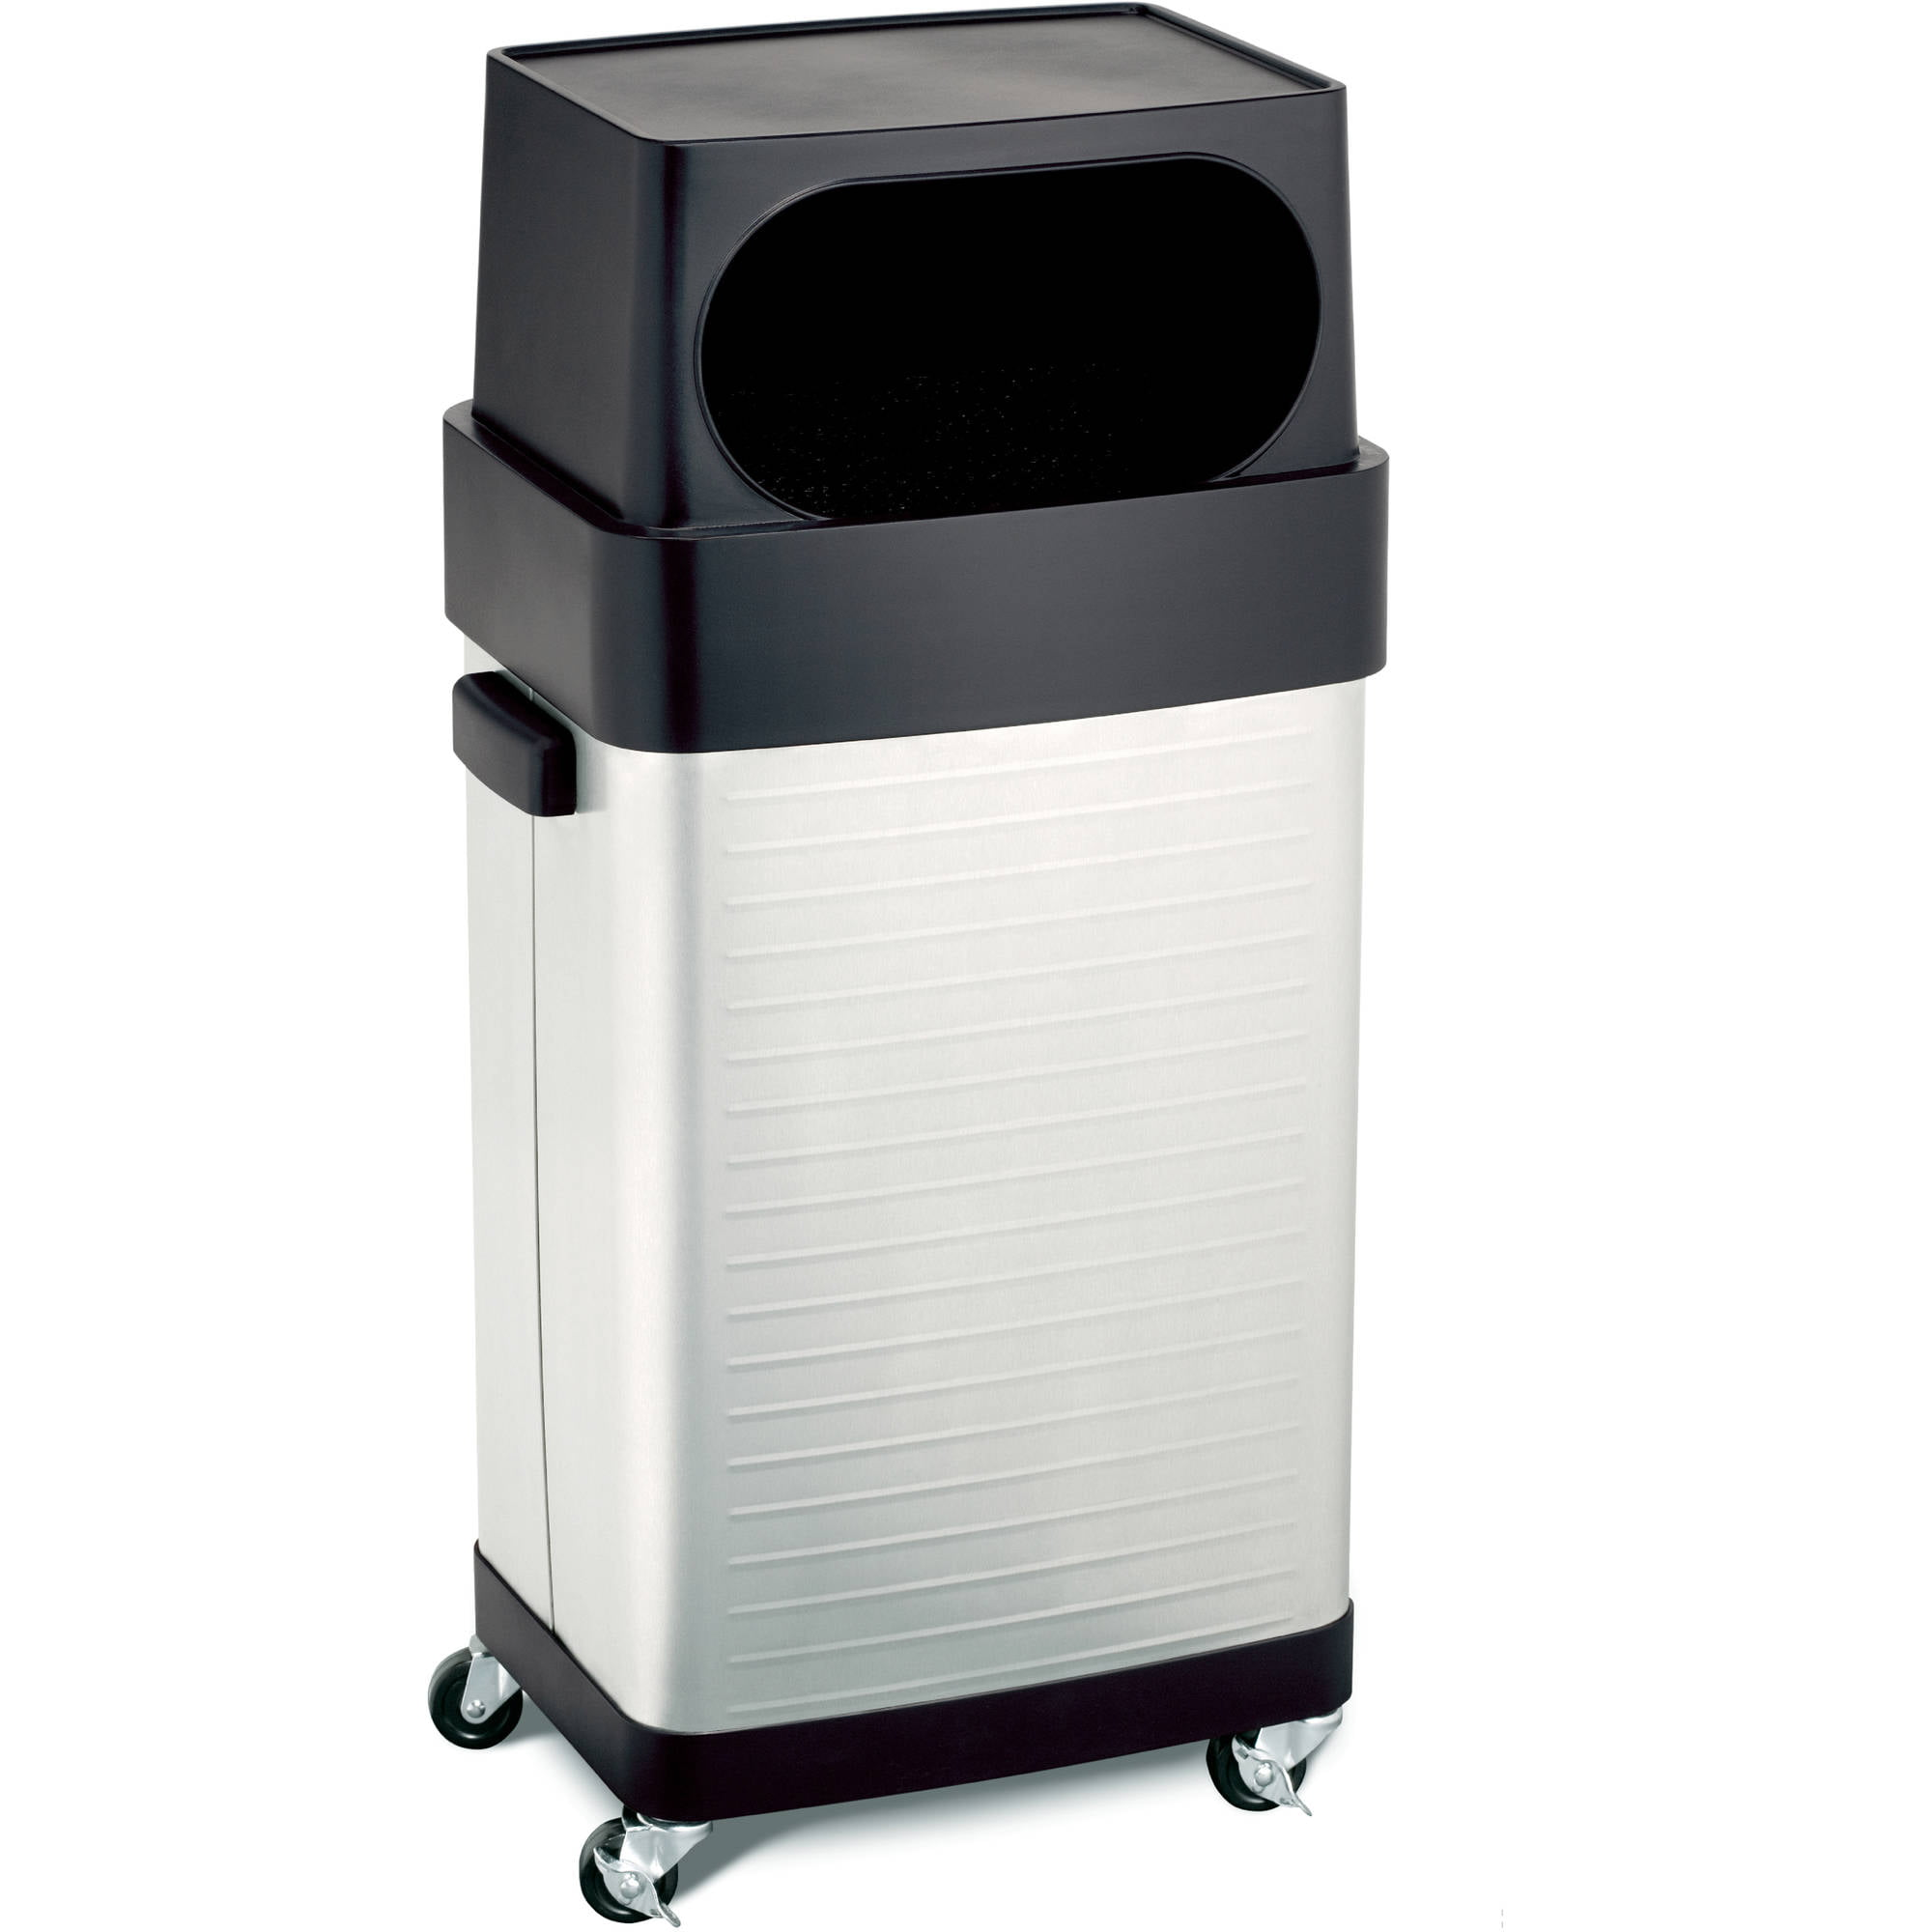 Commercial Stainless Steel Trash Bin   Walmart.com